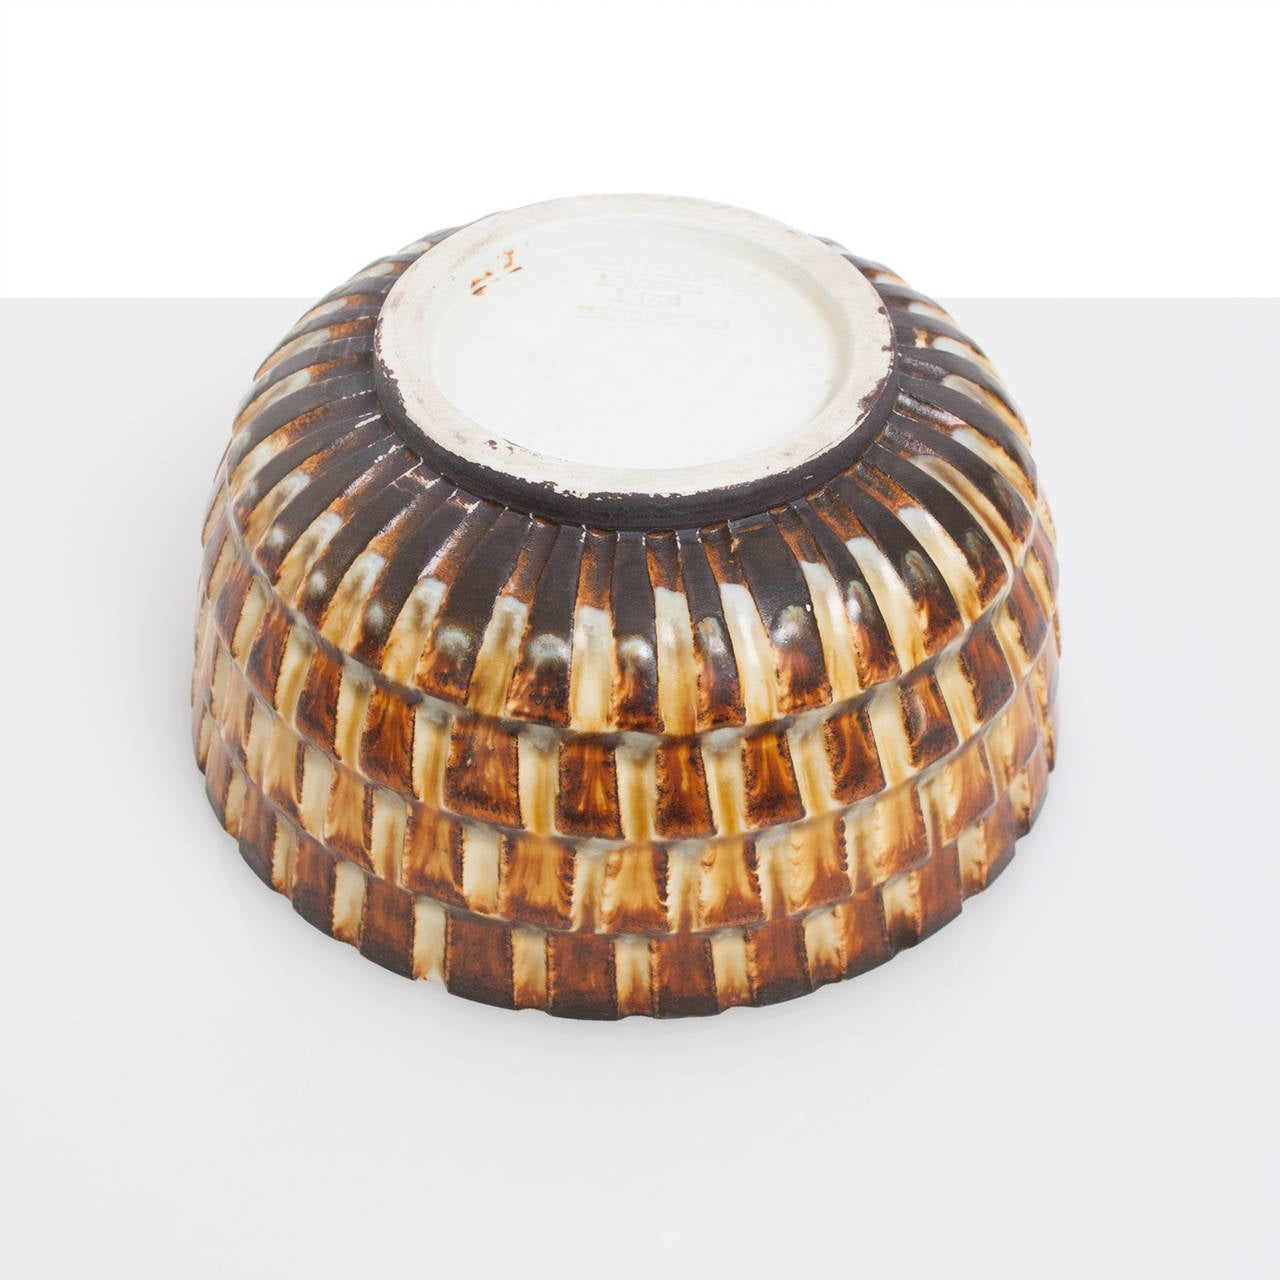 20th Century Scandinavian Modern Textured Ceramic Bowl by Gertrud Lonegren, Rörstrand For Sale